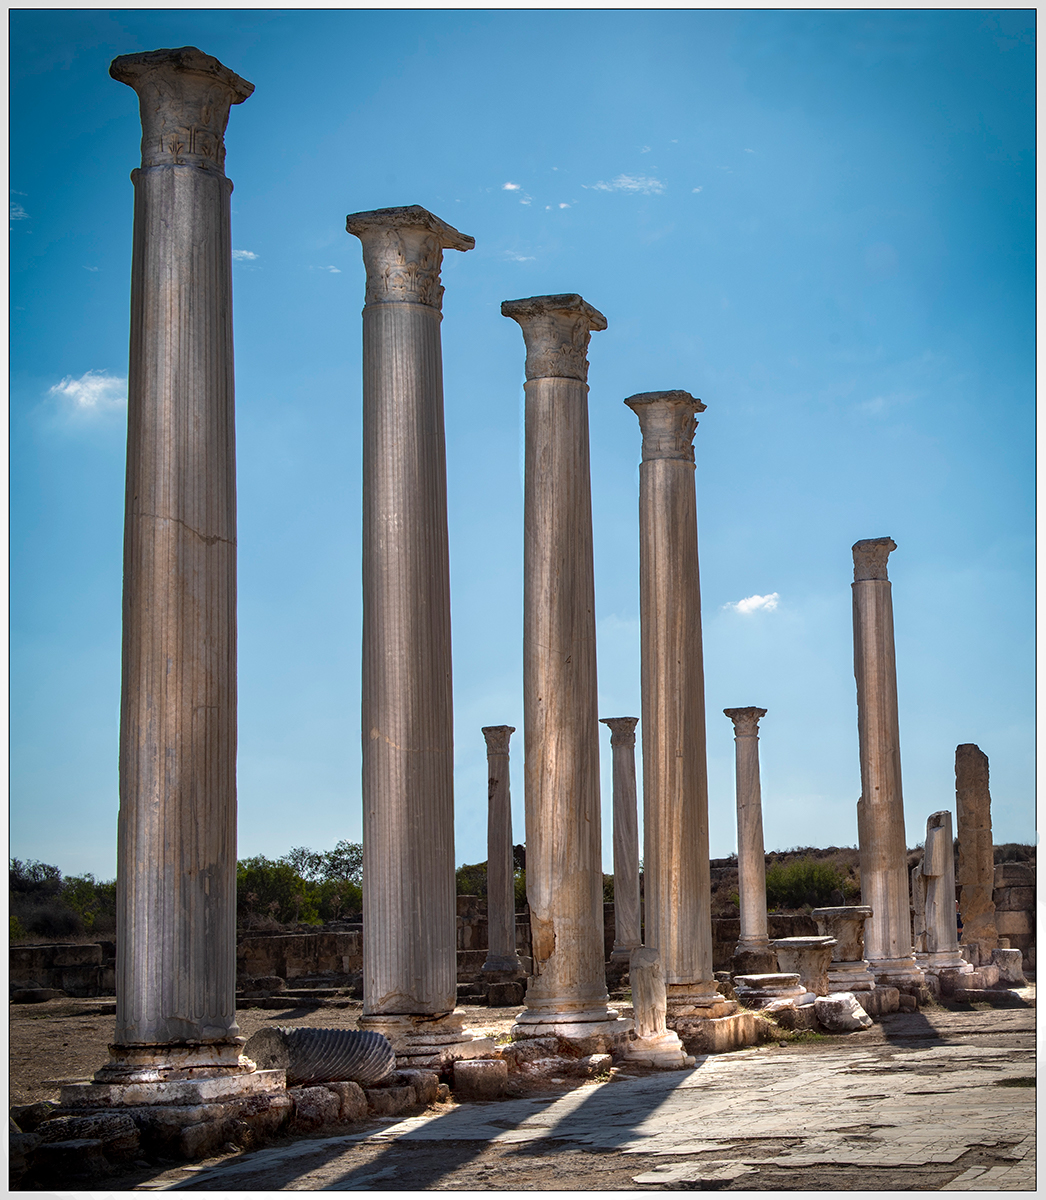 Peter Jeffery_Roman Pillars_